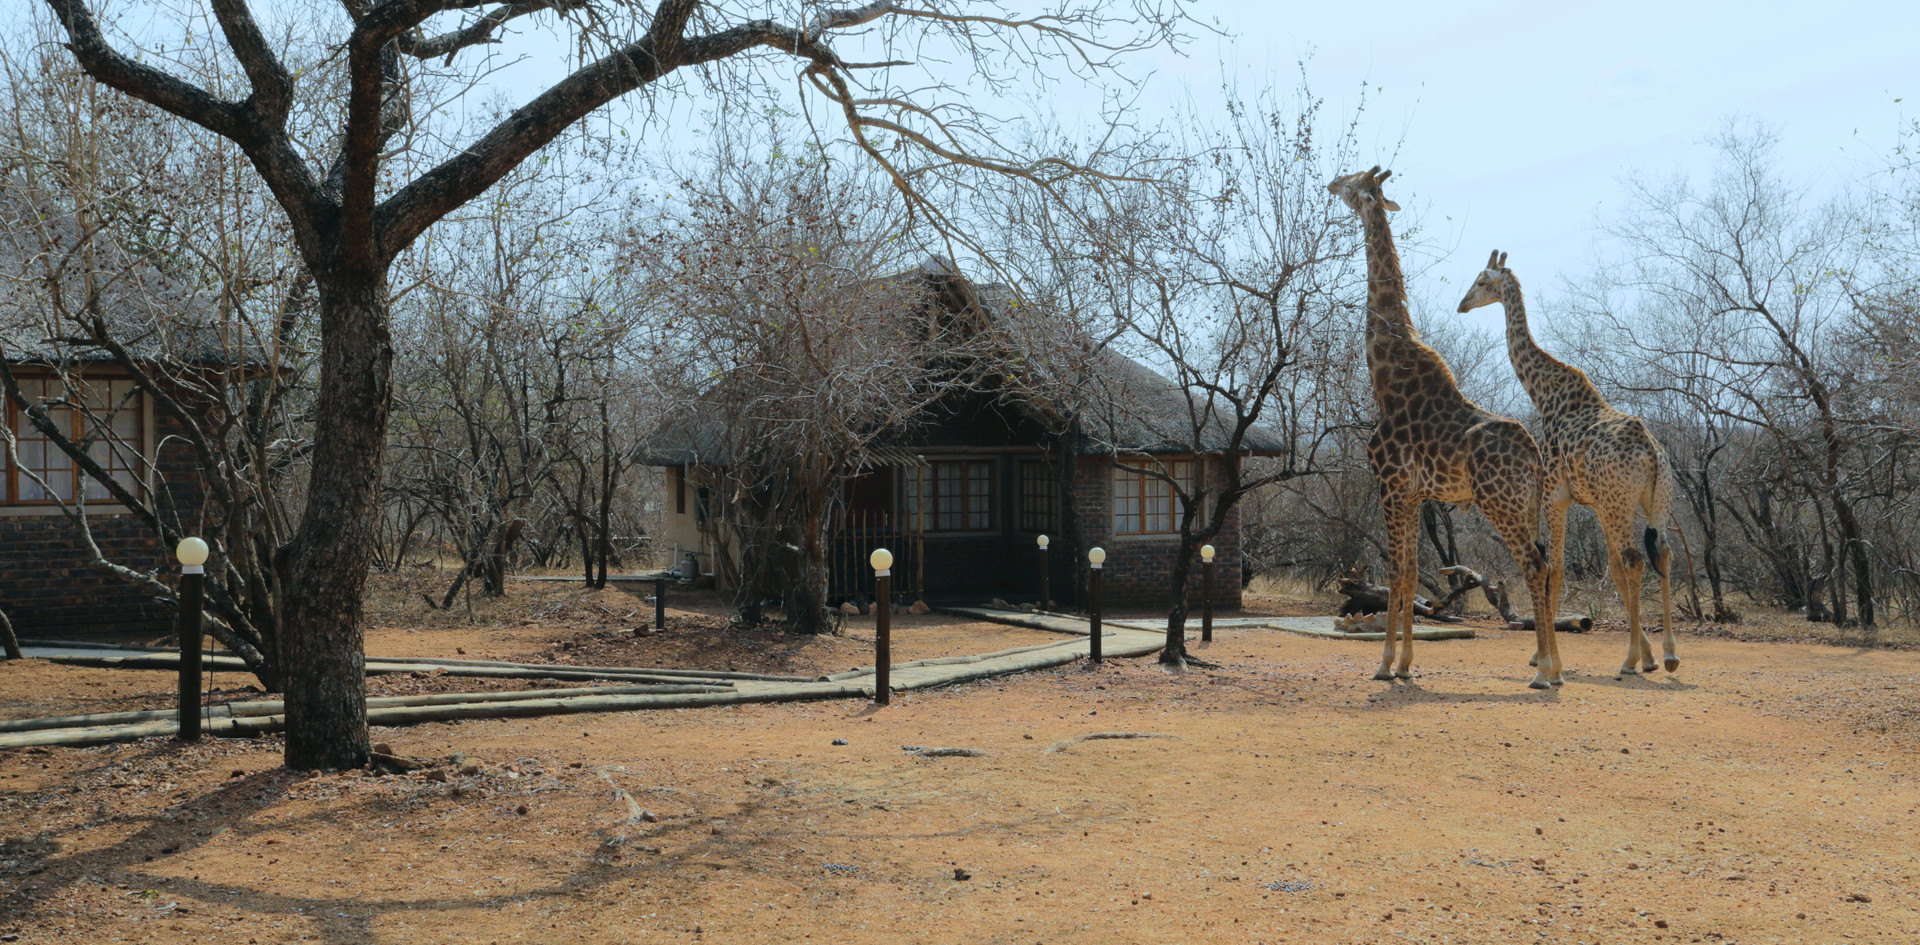 Tusk Bush Lodge Bungalow 2 & 3 Giraffes.